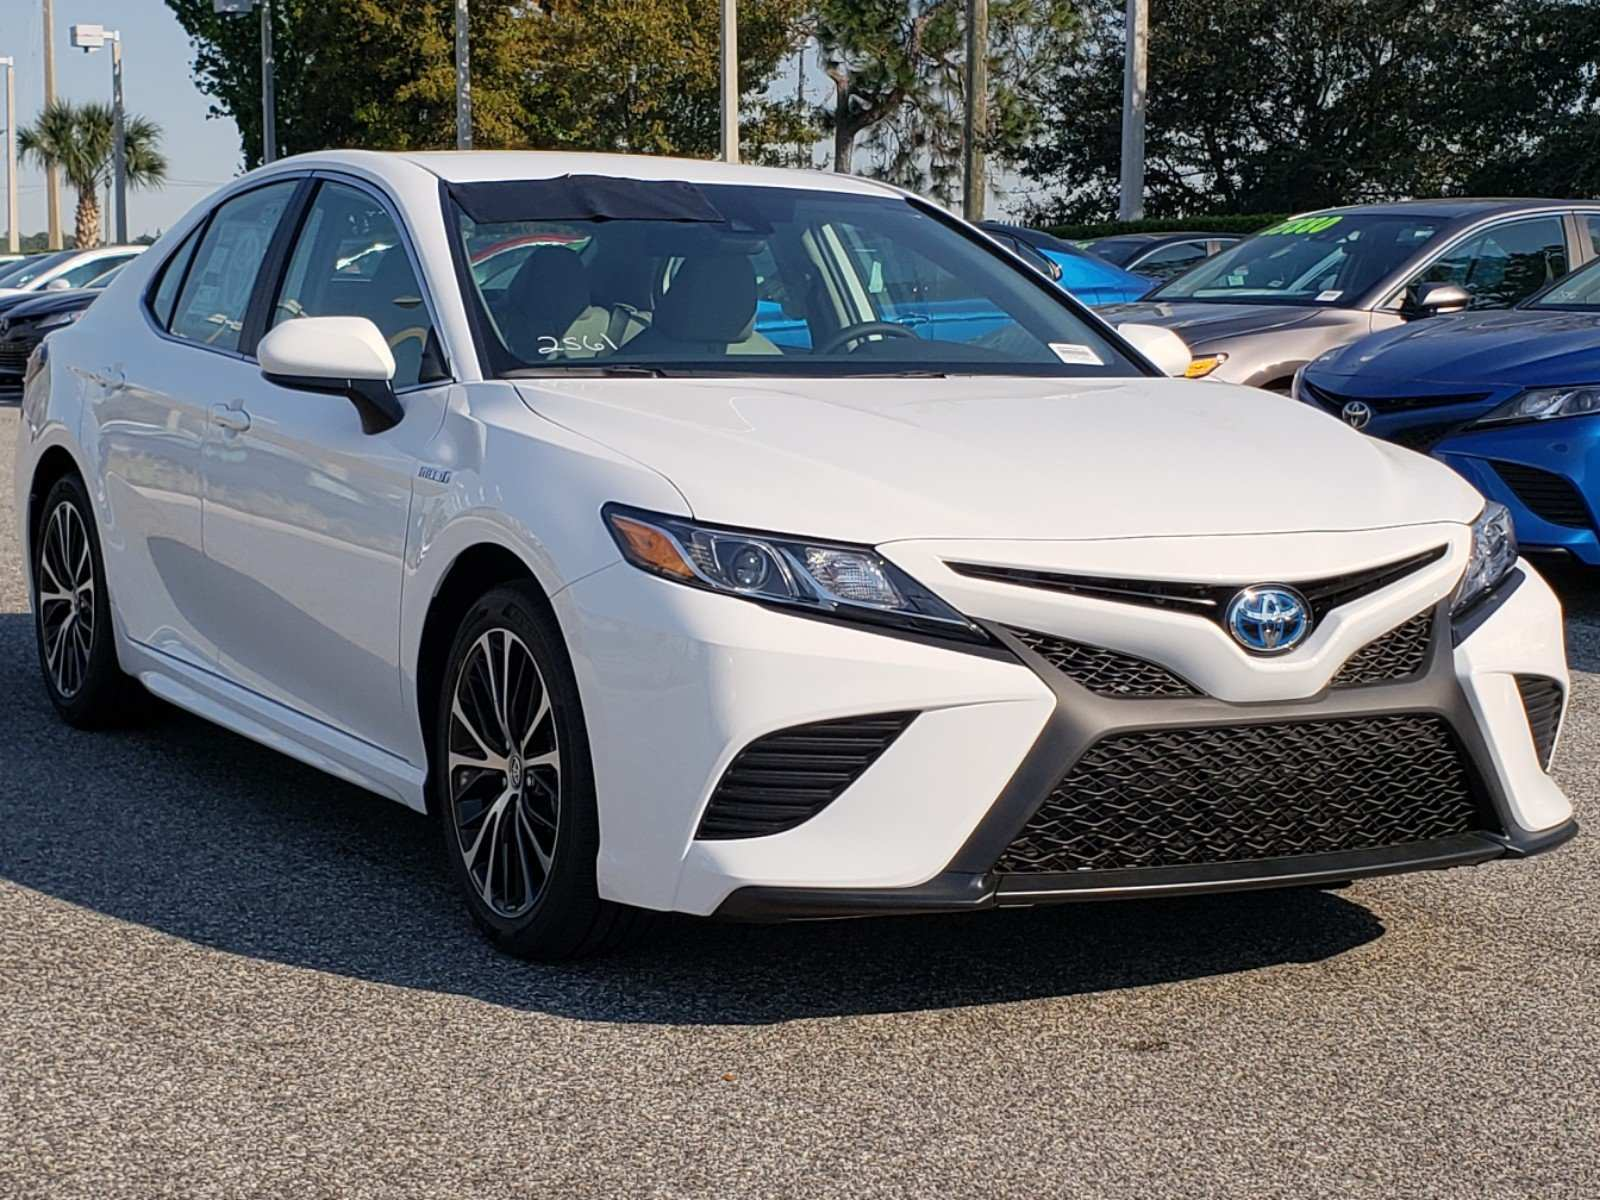 32 All New 2019 Toyota Camry Se Hybrid New Concept